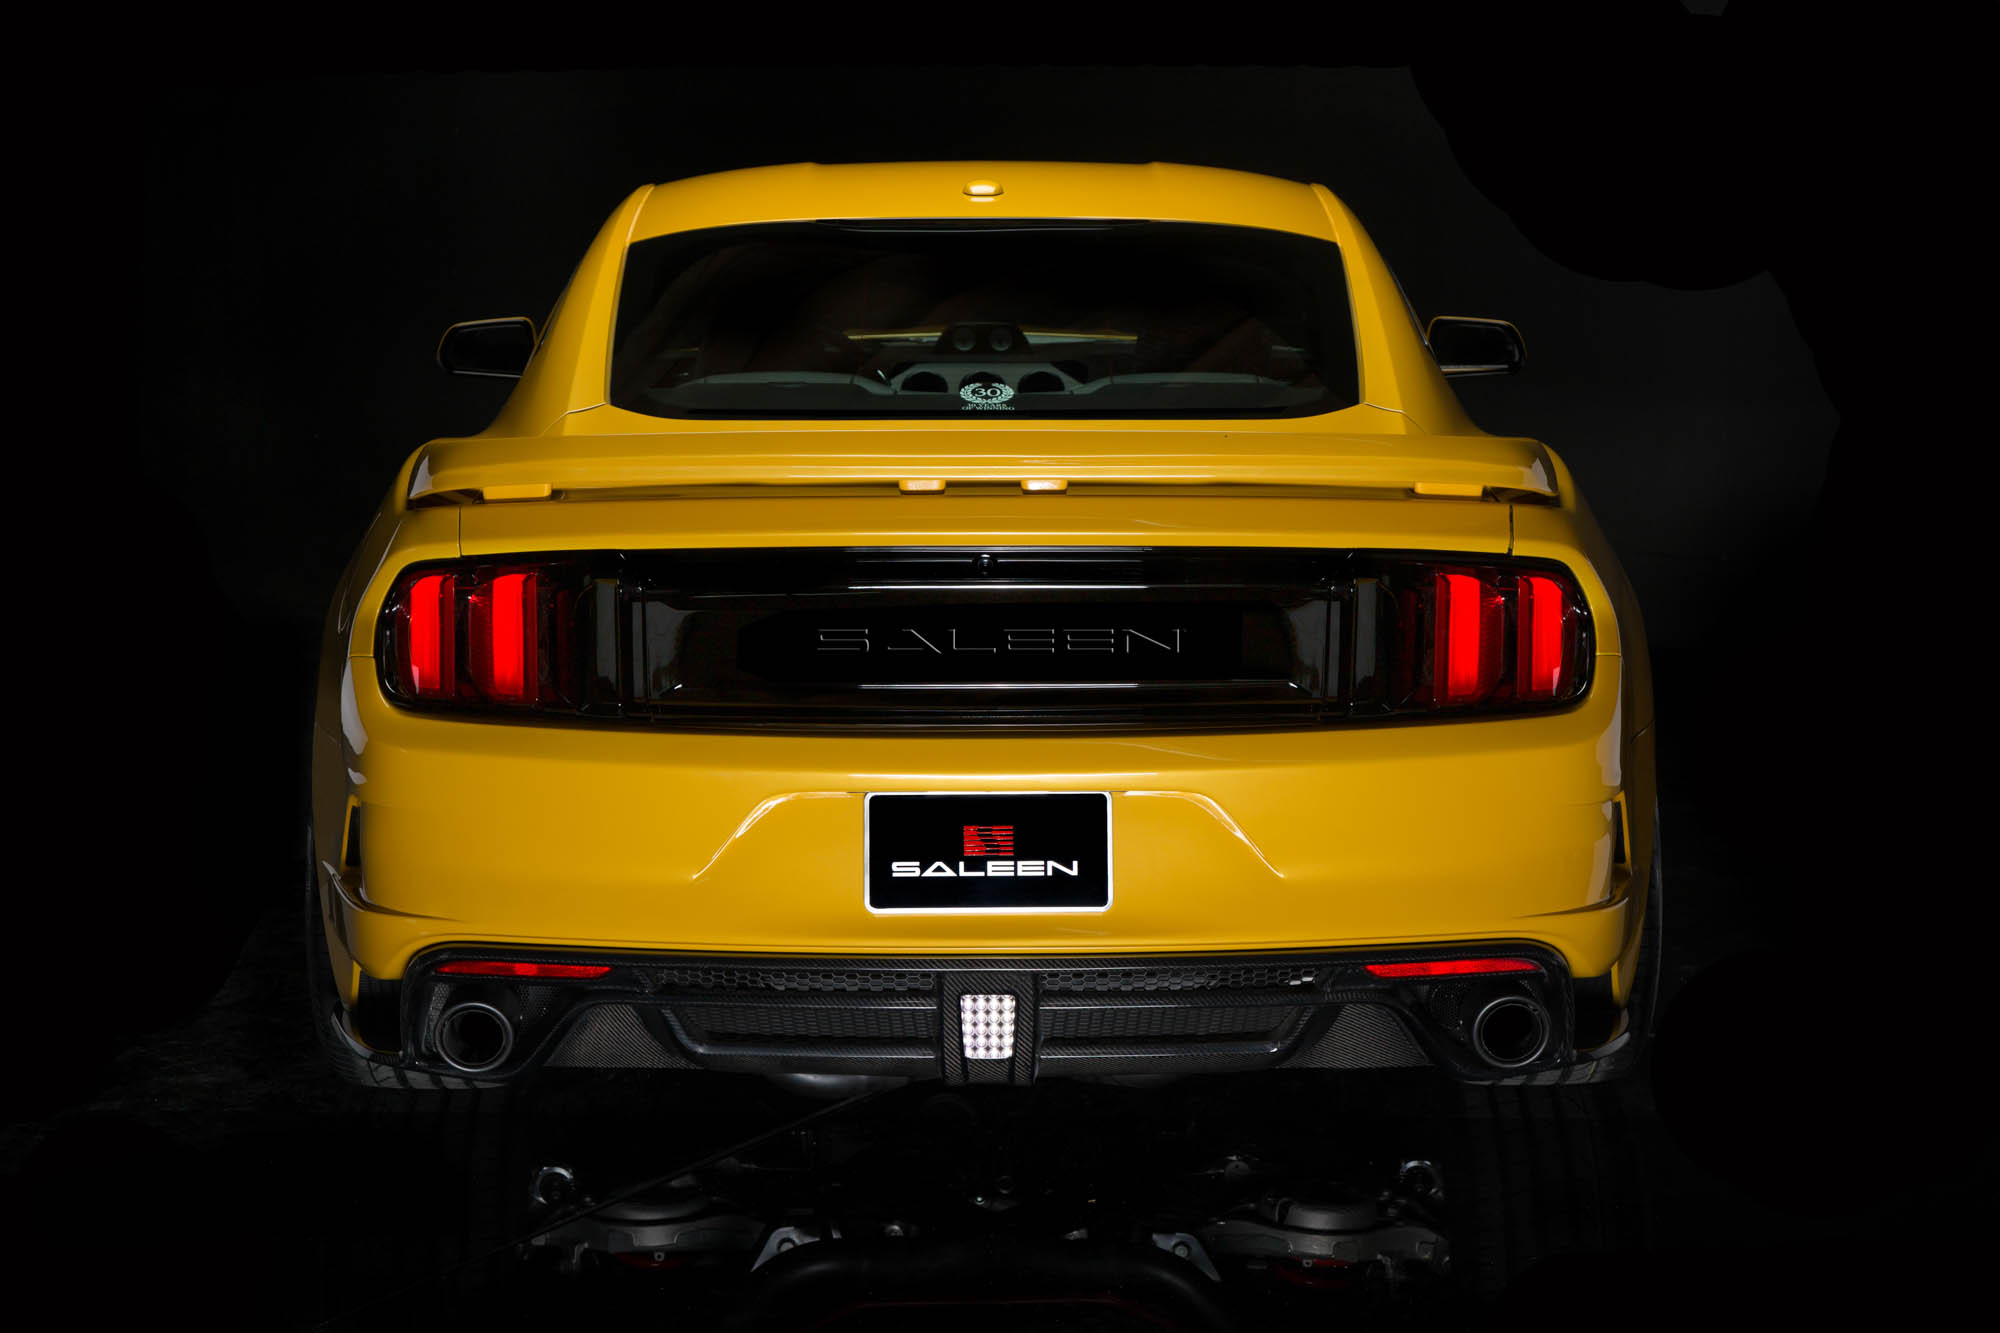 2015 Saleen Ford Mustang S302 Black Label - Muscle Cars ...